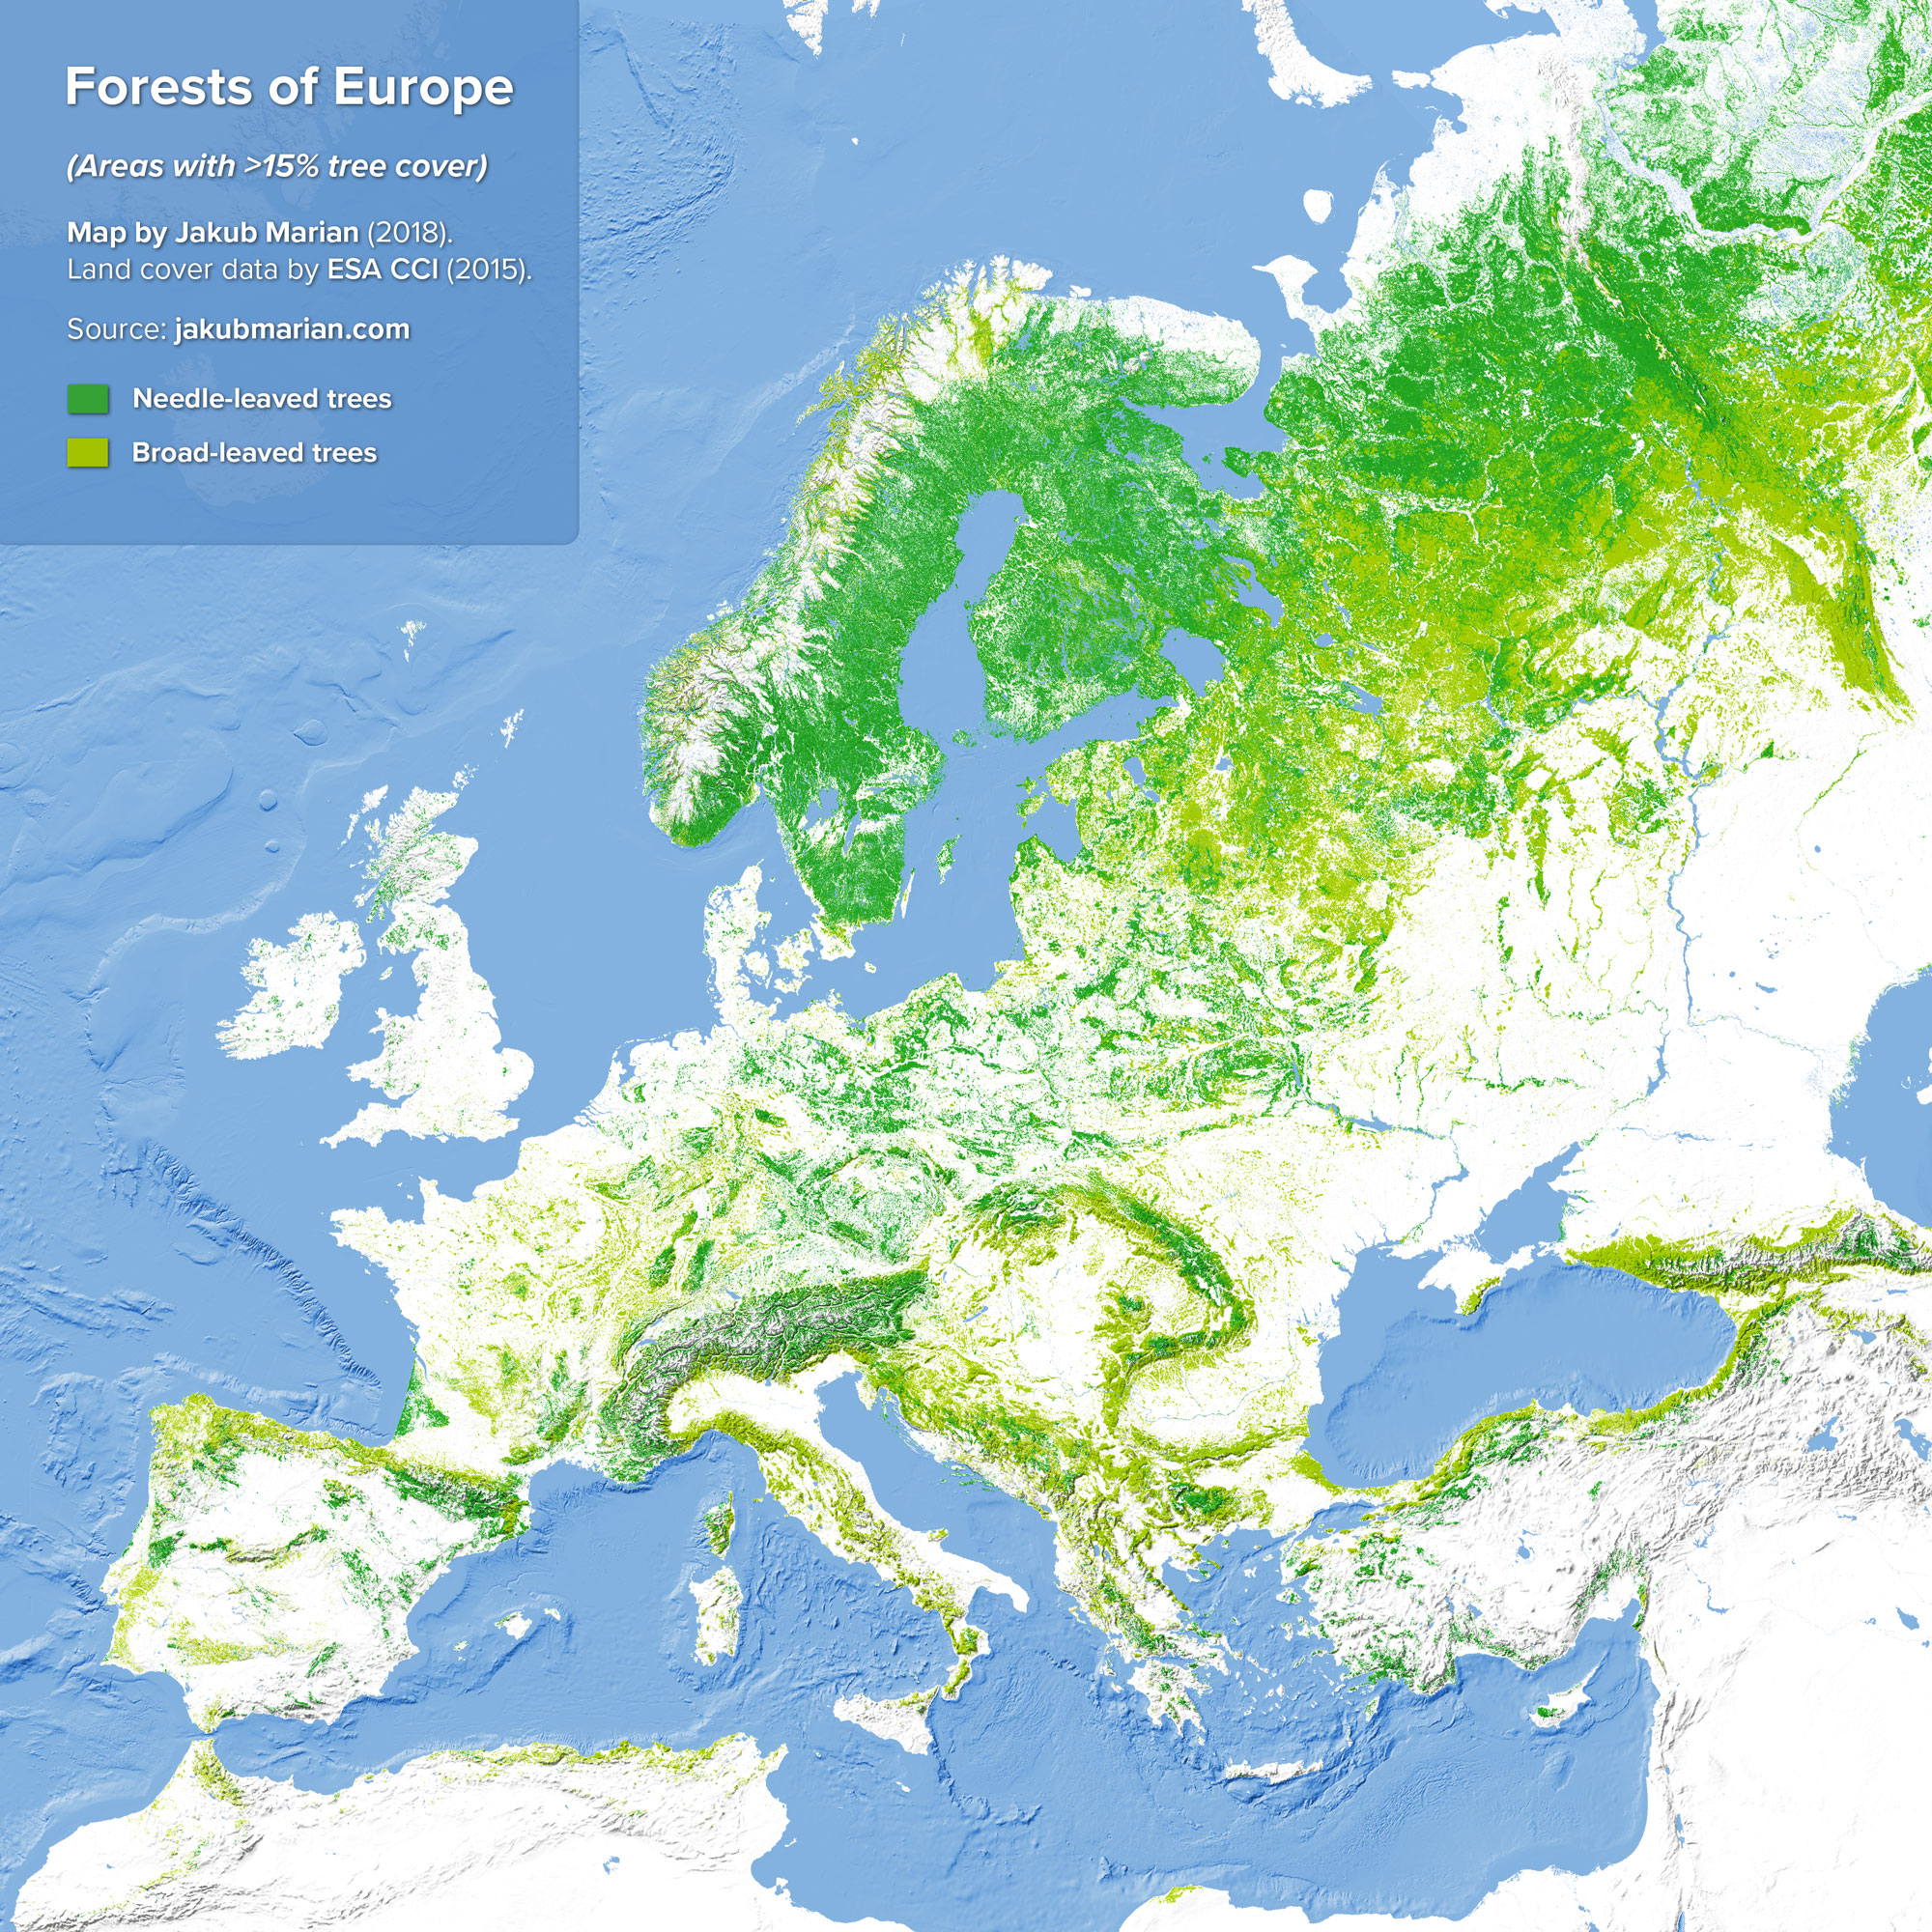 Forests of Europe